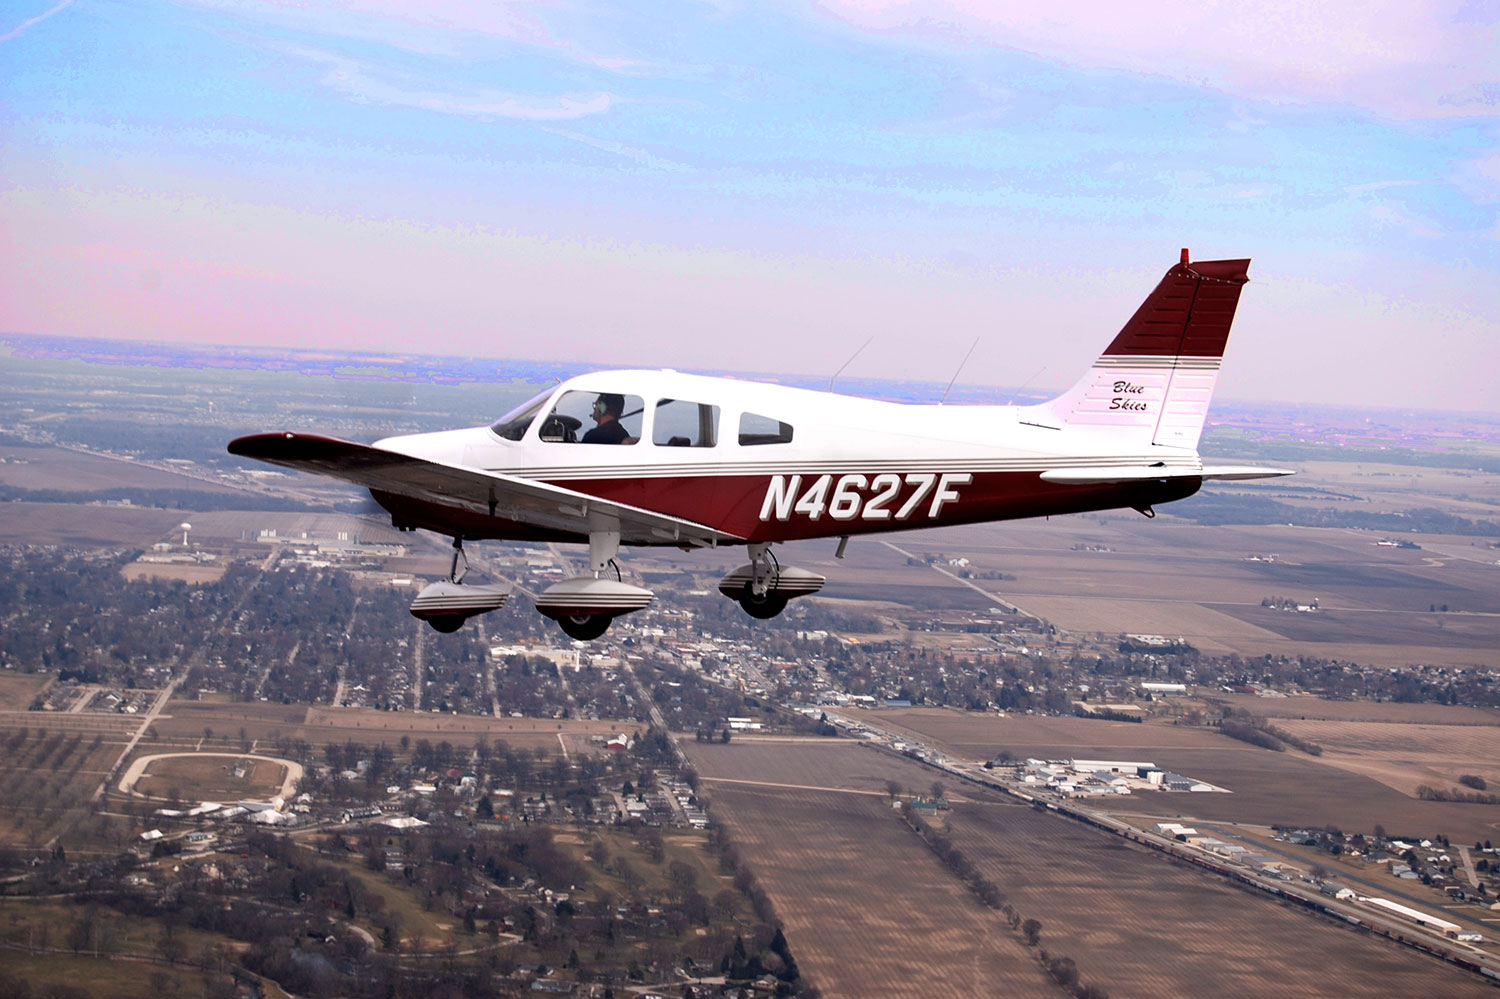 Blue-Skies-Flying-Services-Lake-in-the-Hills-Panel-Bluetooth-Piper-Archer-Plane